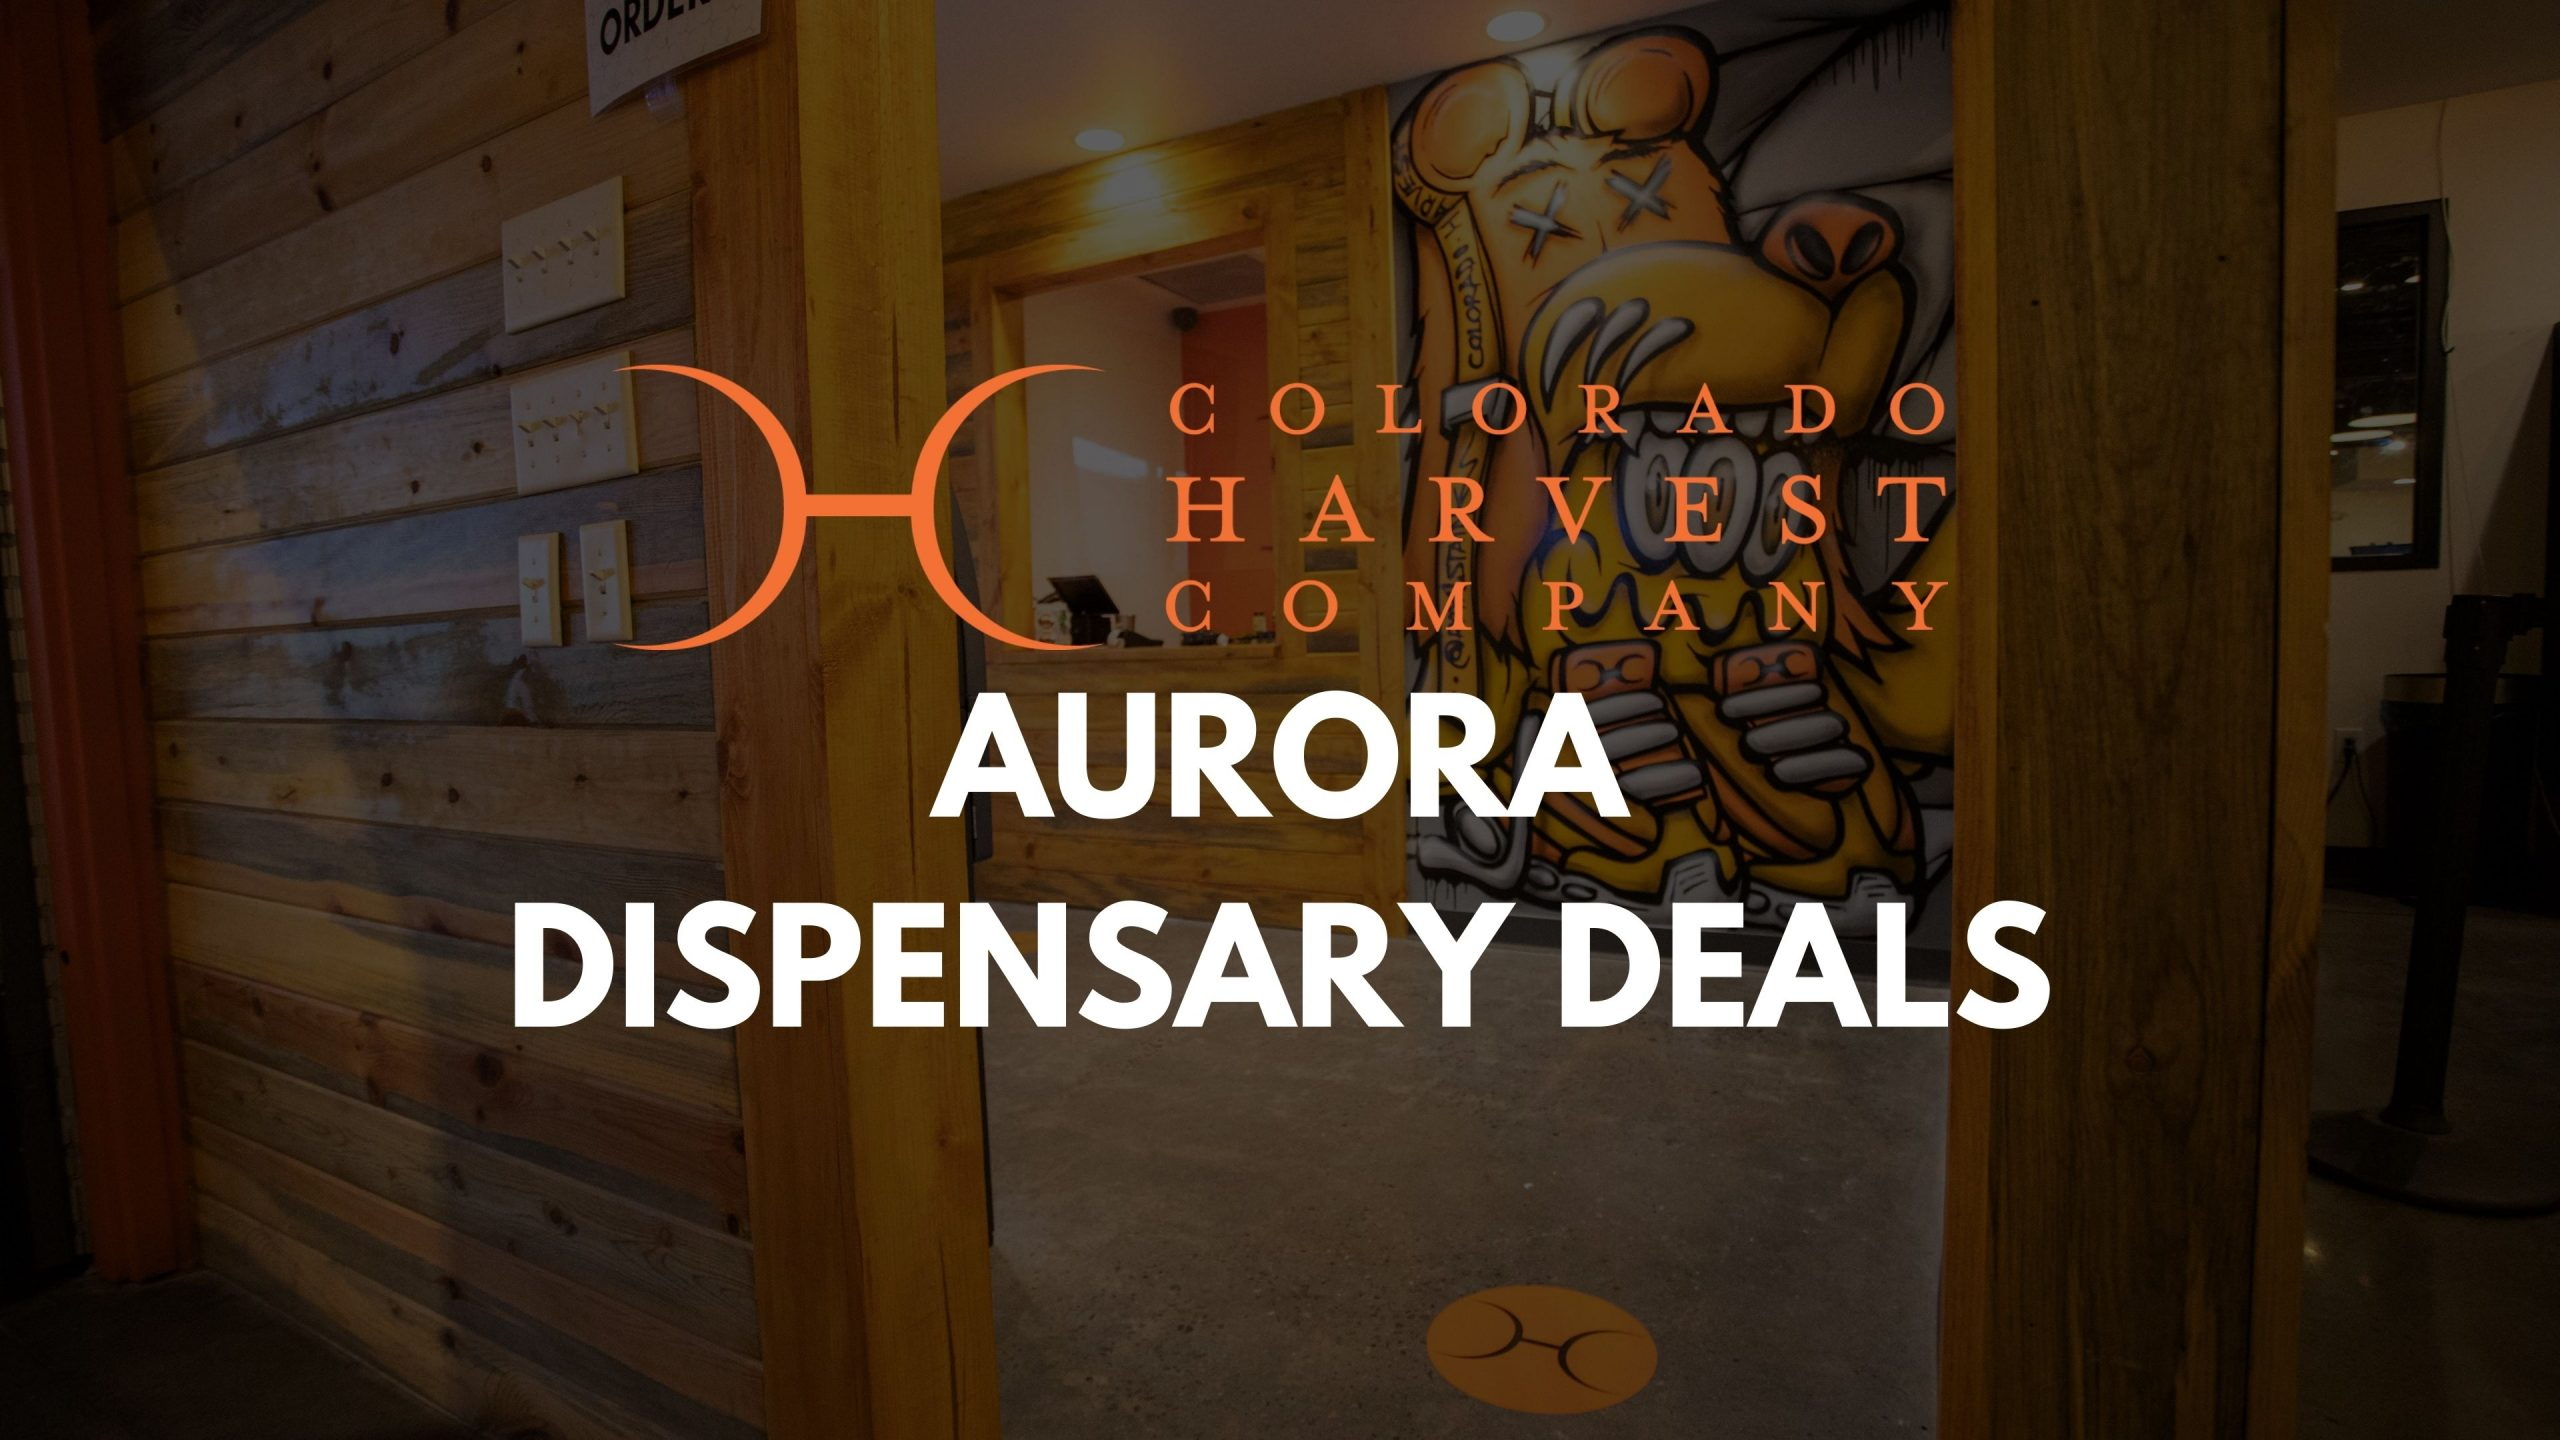 Aurora Dispensary Deals